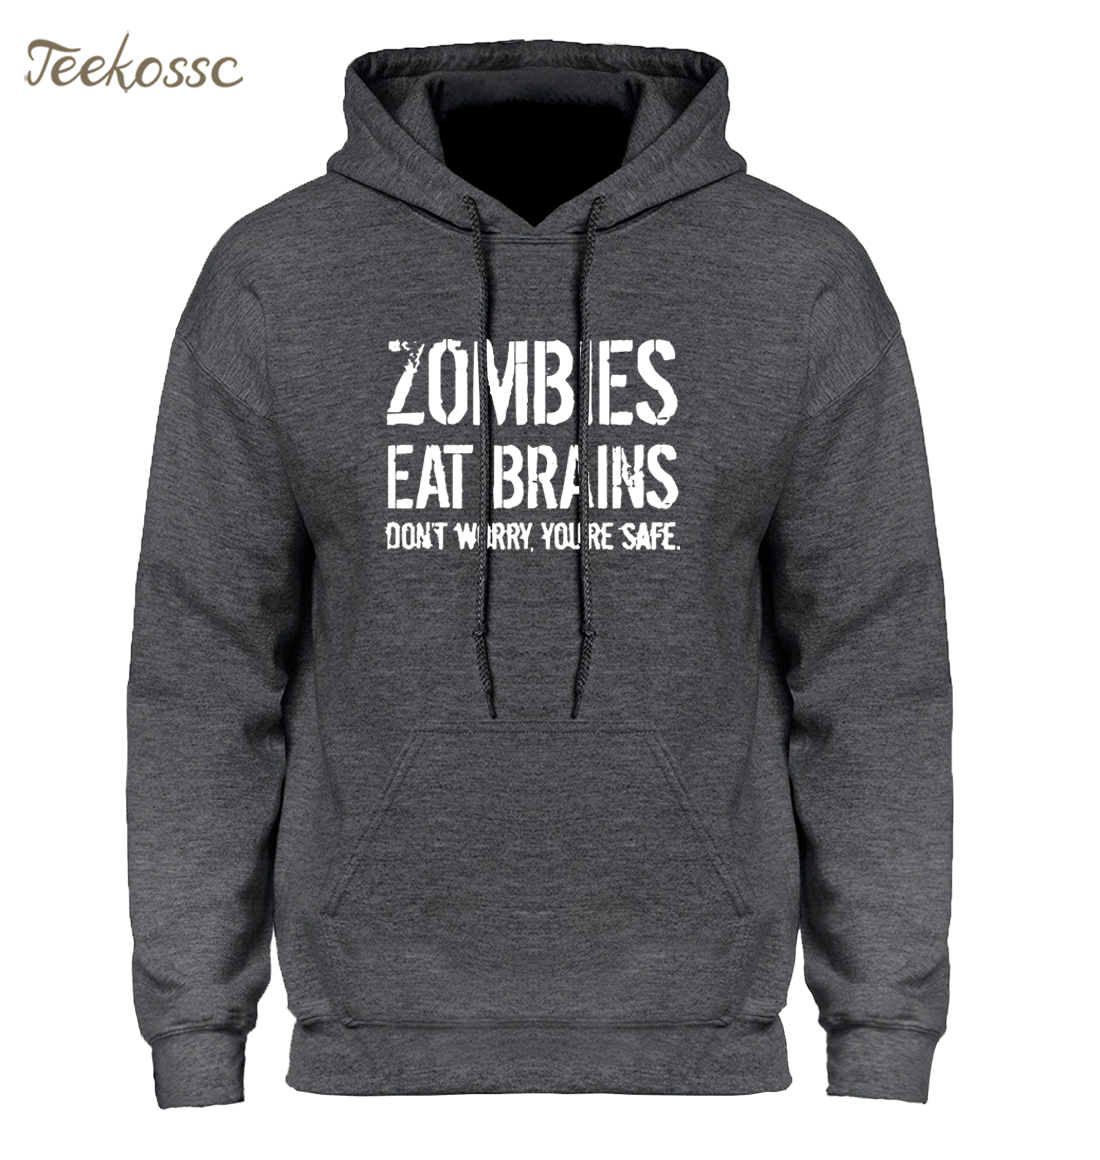 Zombies Eat Brains So Youre Safe Hoodie Hoodies Sweatshirt Men 2018 New Winter Autumn Hooded Hoody Tracksuit Print Casual Coat